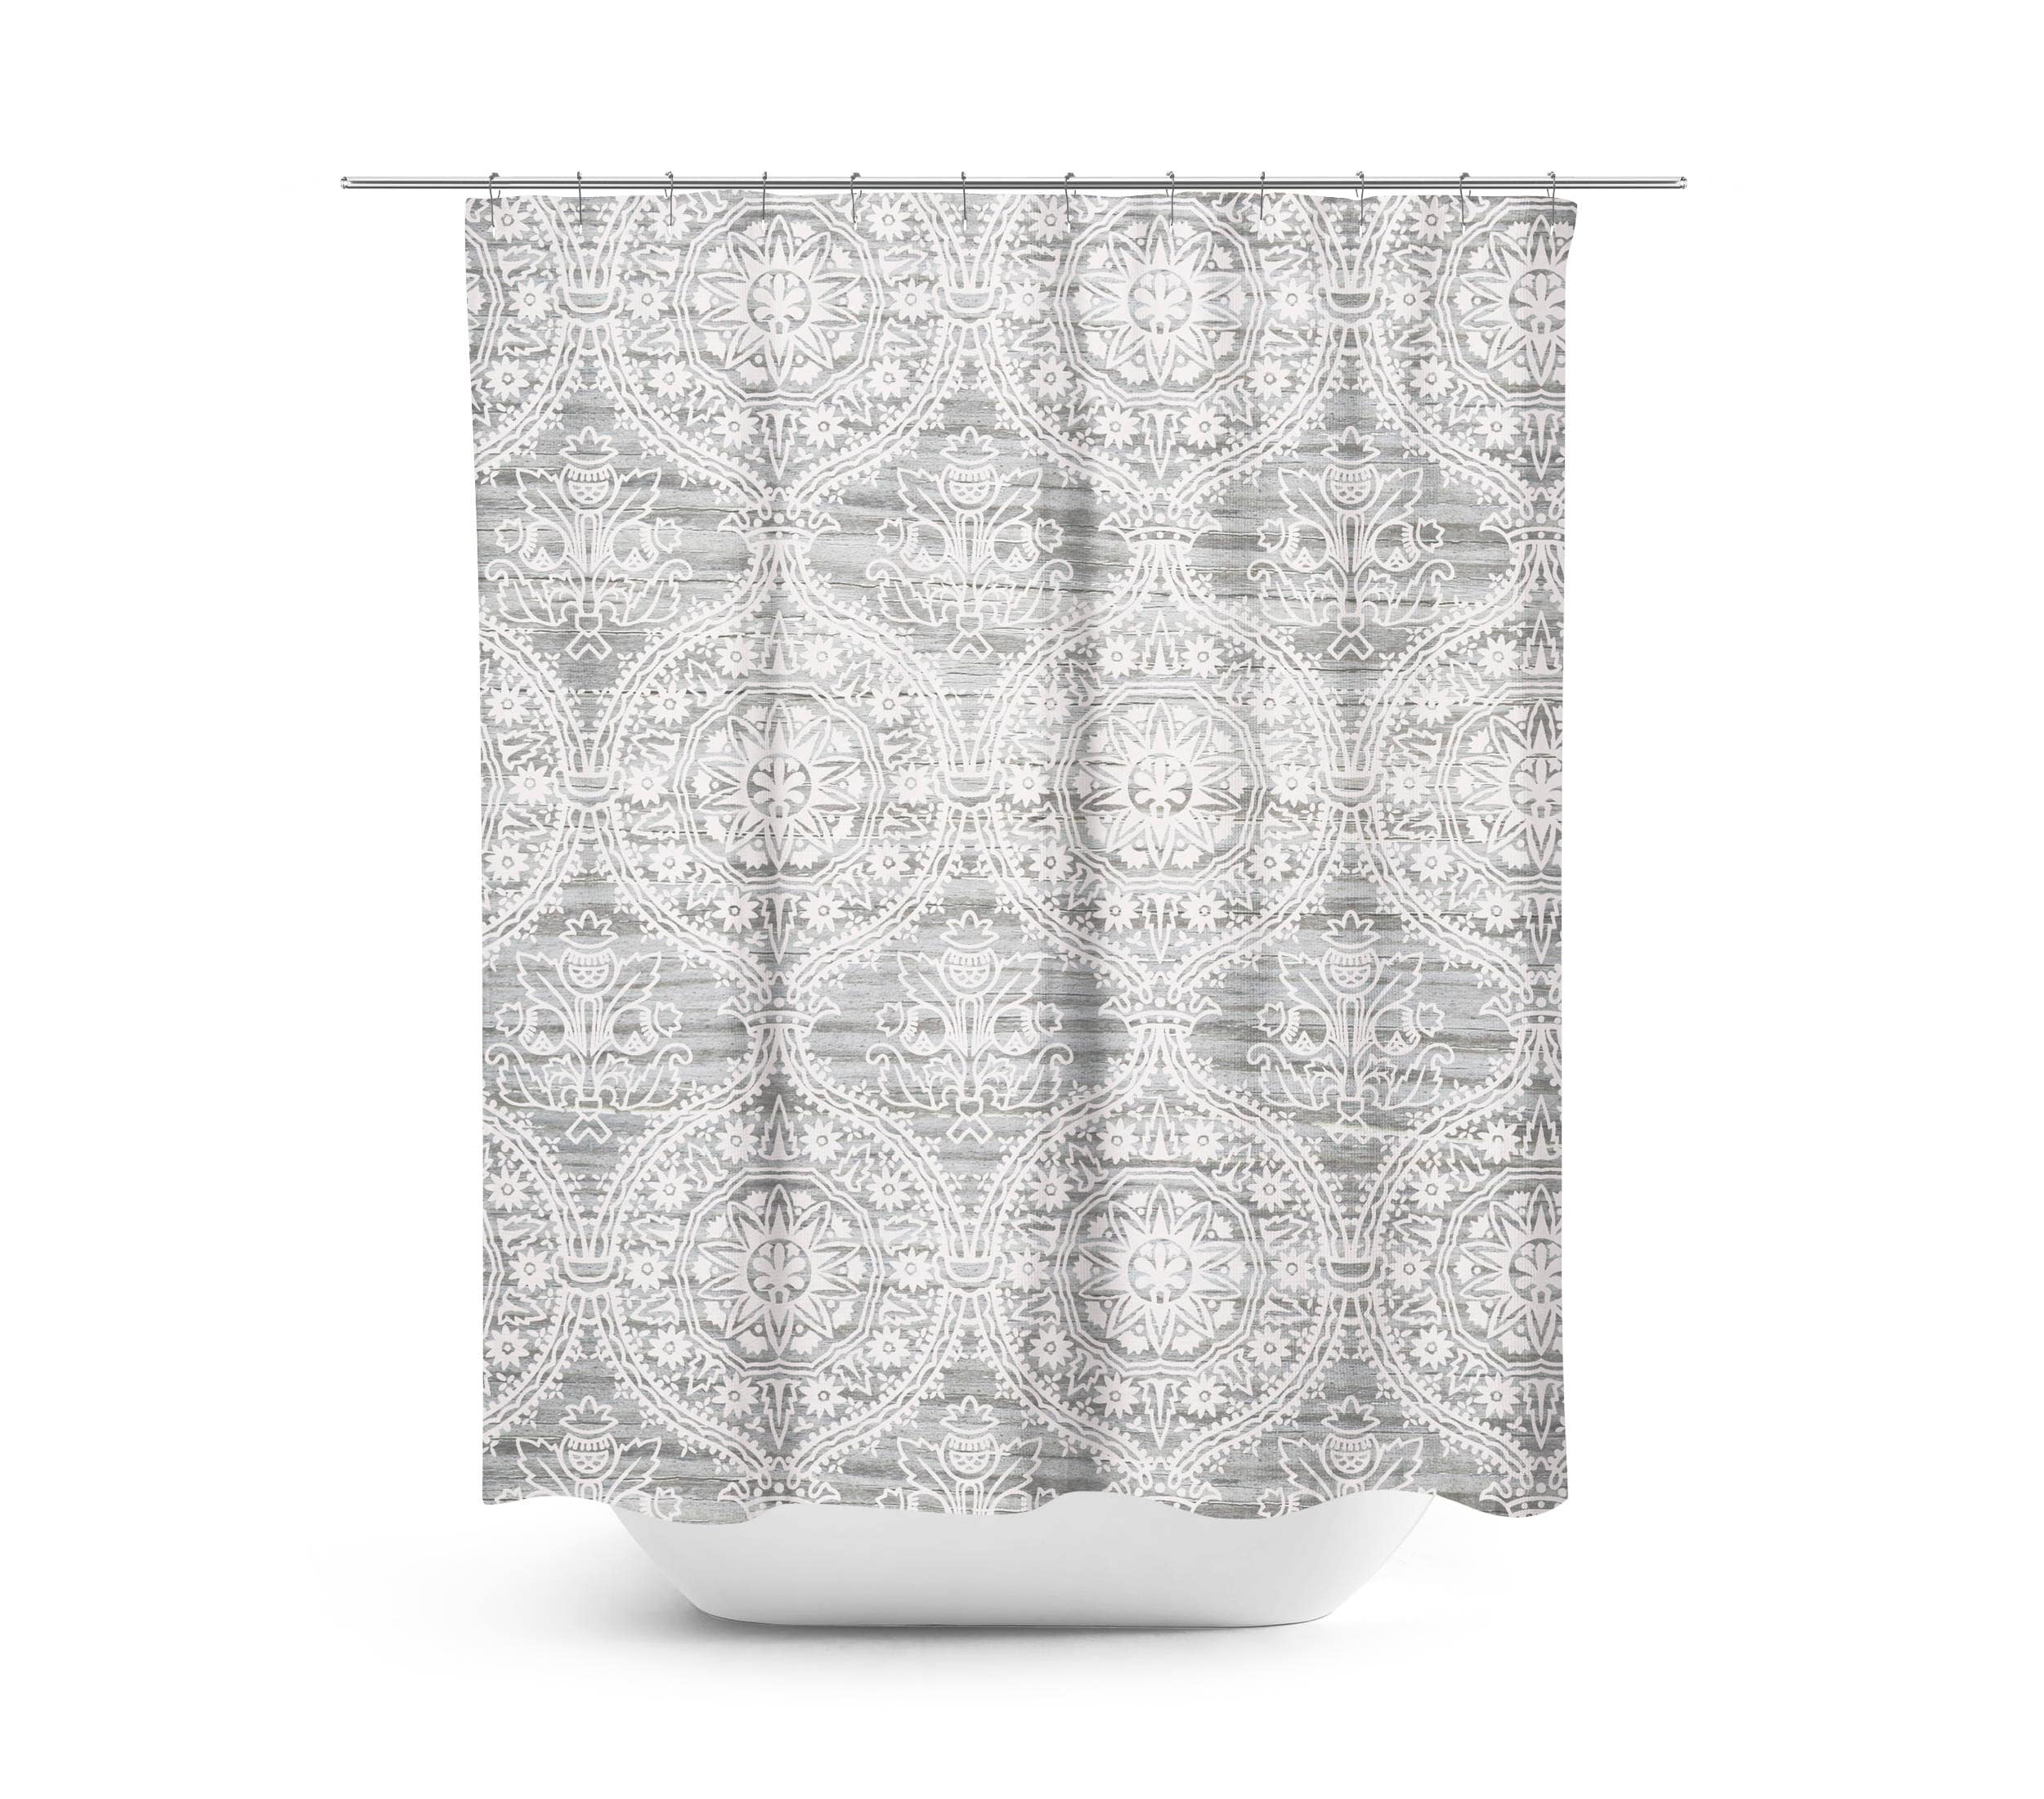 Farmhouse Shower Curtain Gray Bathroom Rustic White And Decor For Master Bath